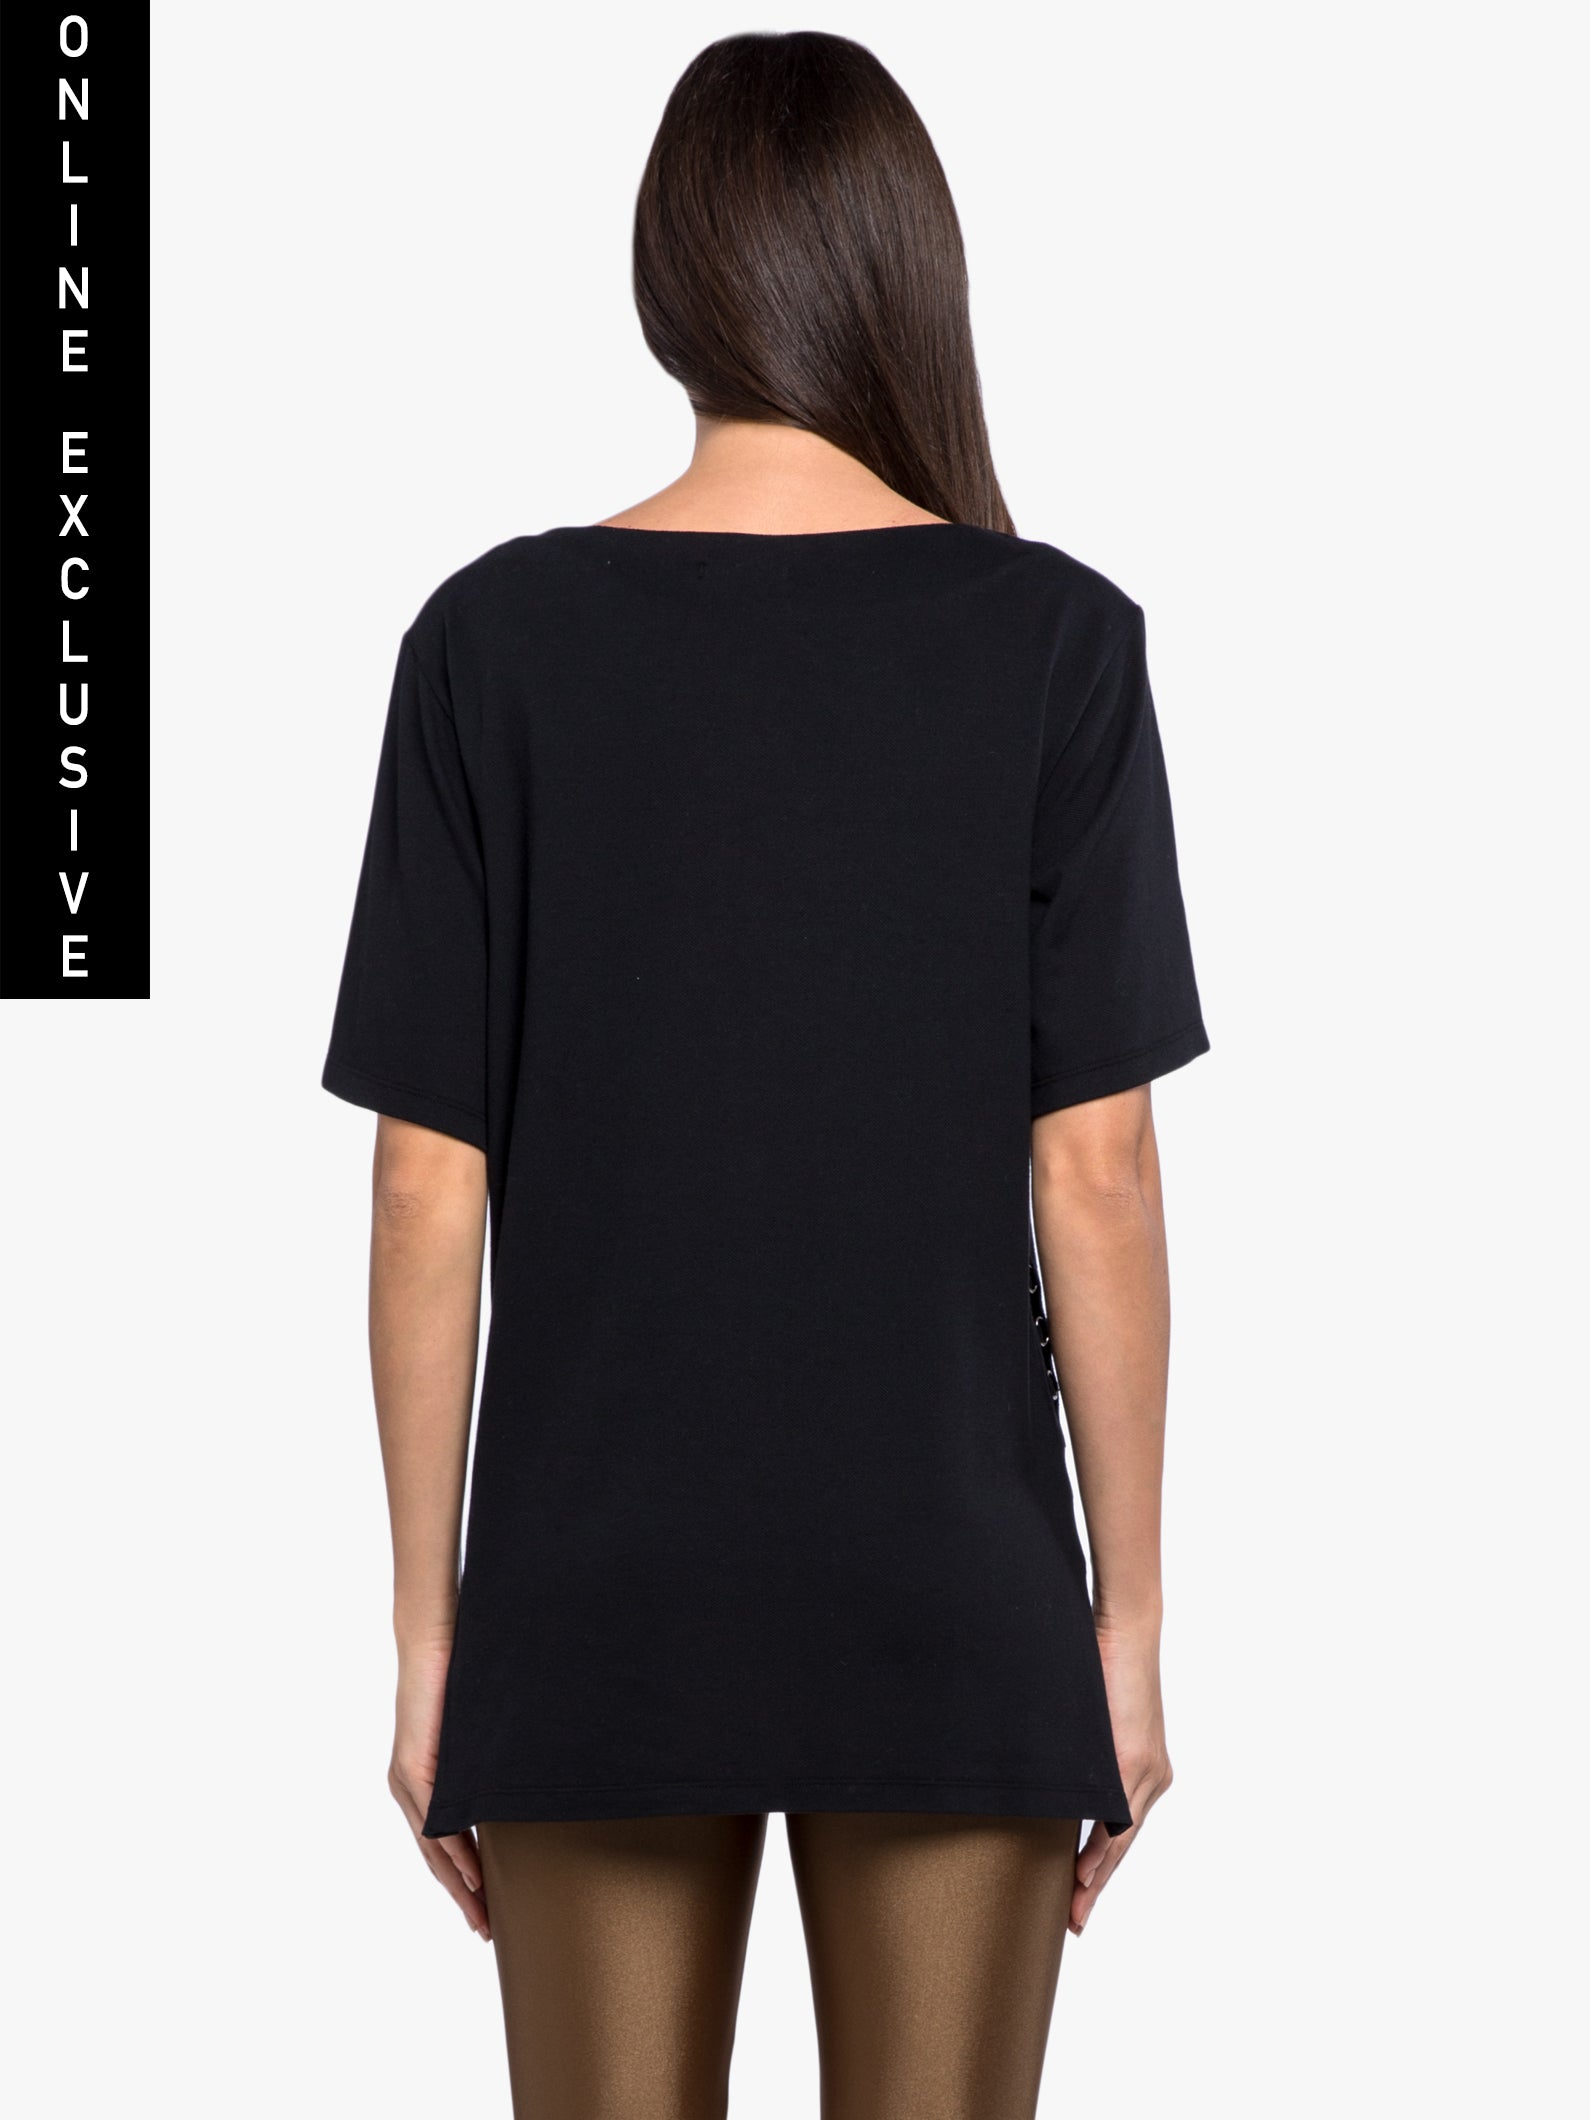 Halcyon Arlo Top - Black